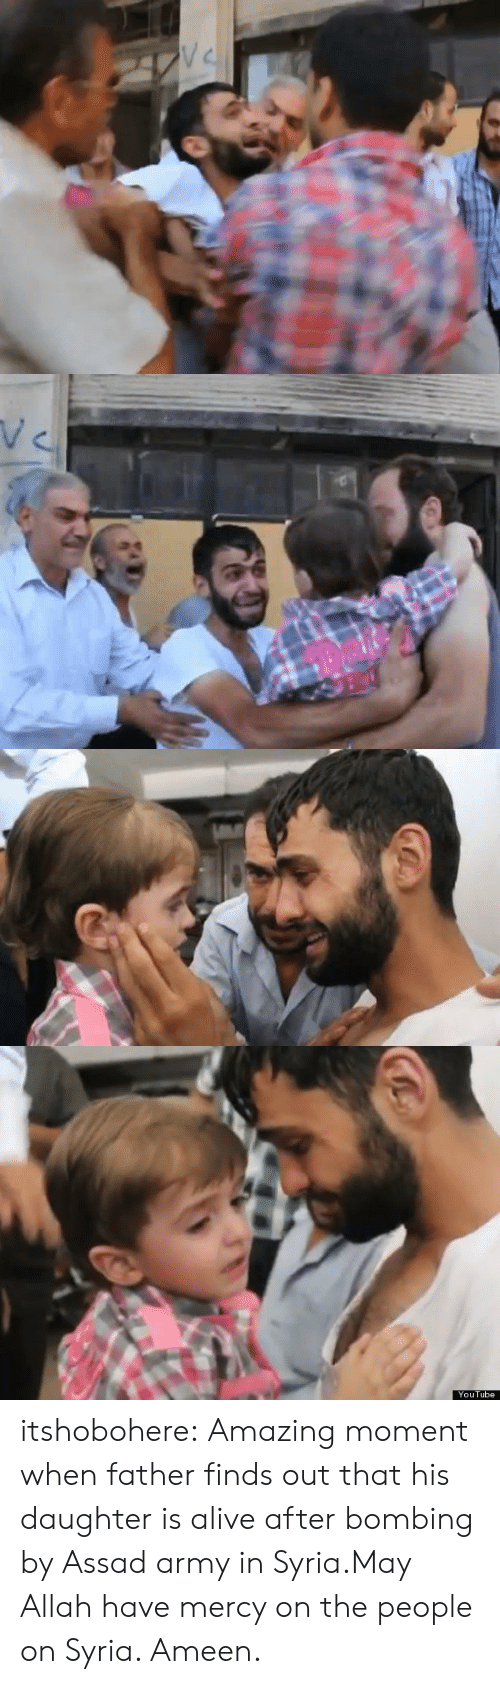 Syria: V C   YouTube itshobohere:  Amazing moment when father finds out that his daughter is alive after bombing by Assad army in Syria.May Allah have mercy on the people on Syria. Ameen.